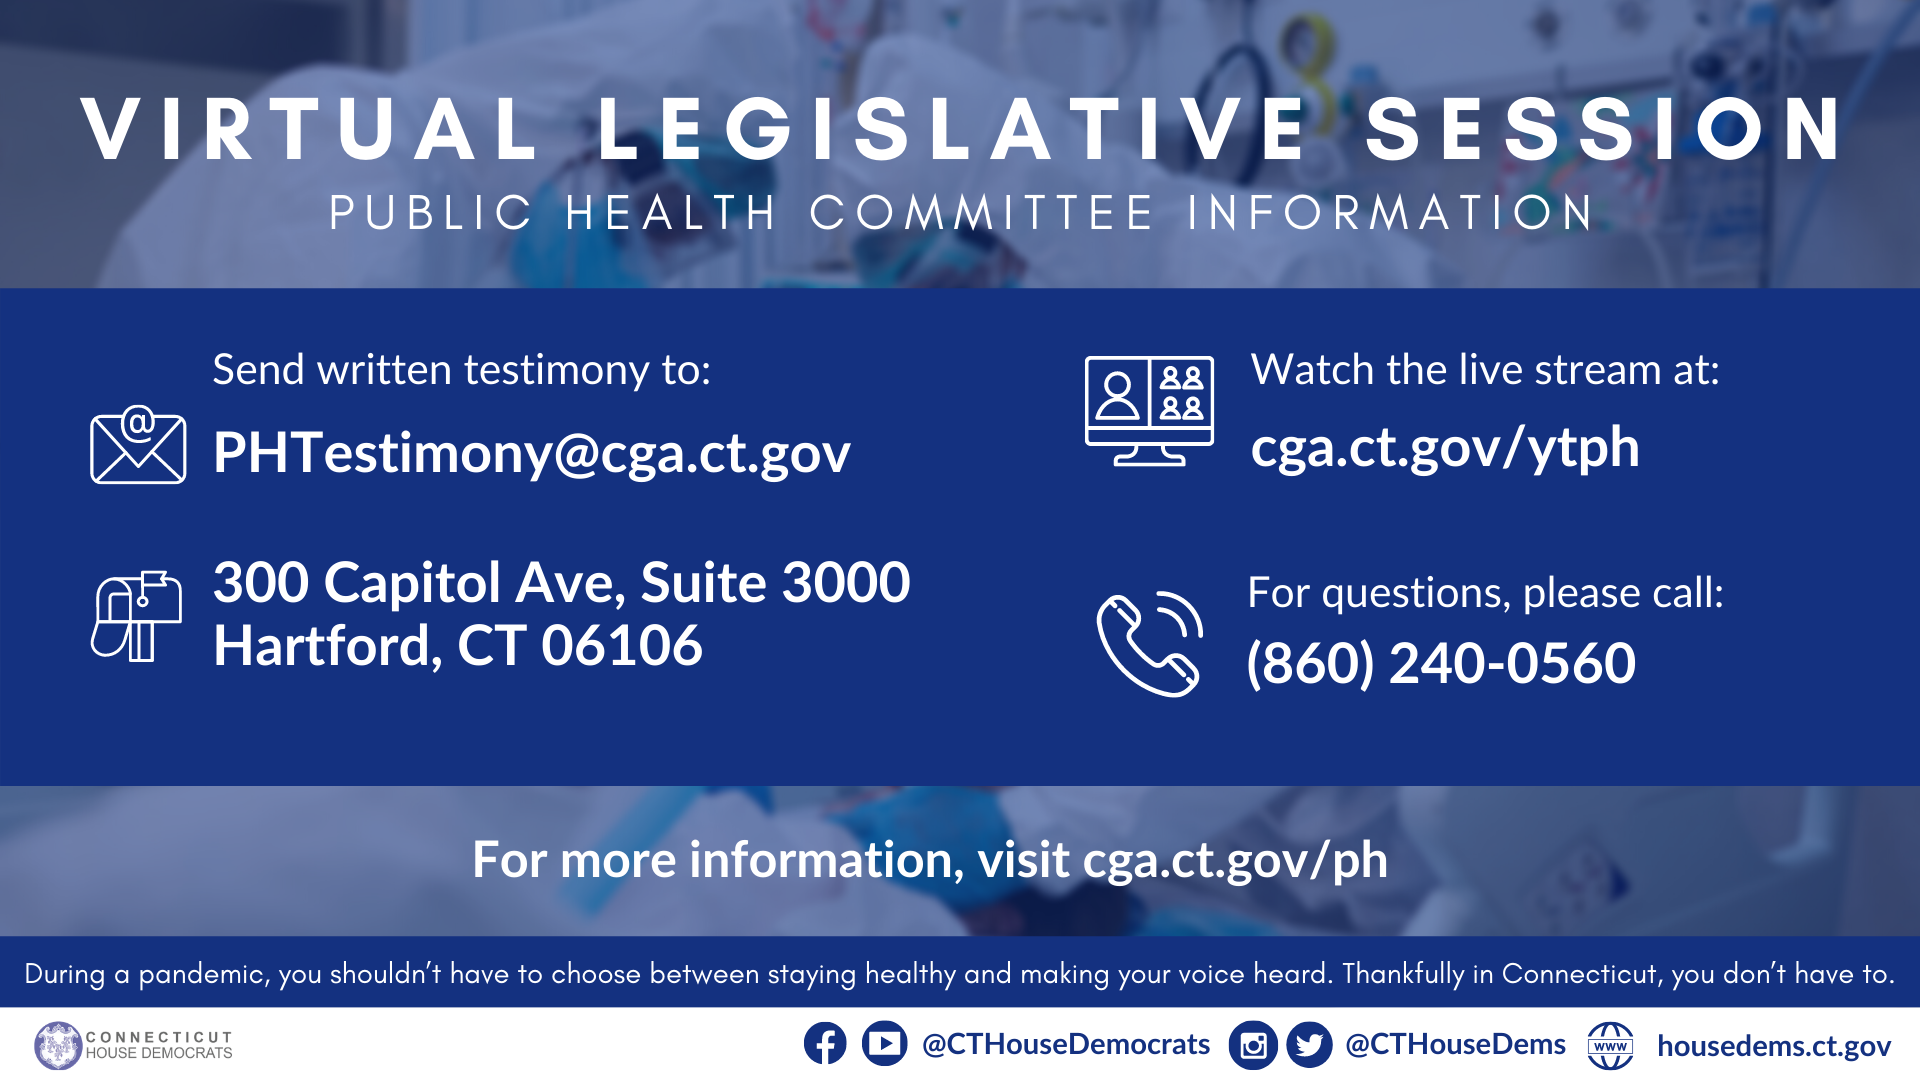 Public Health Committee